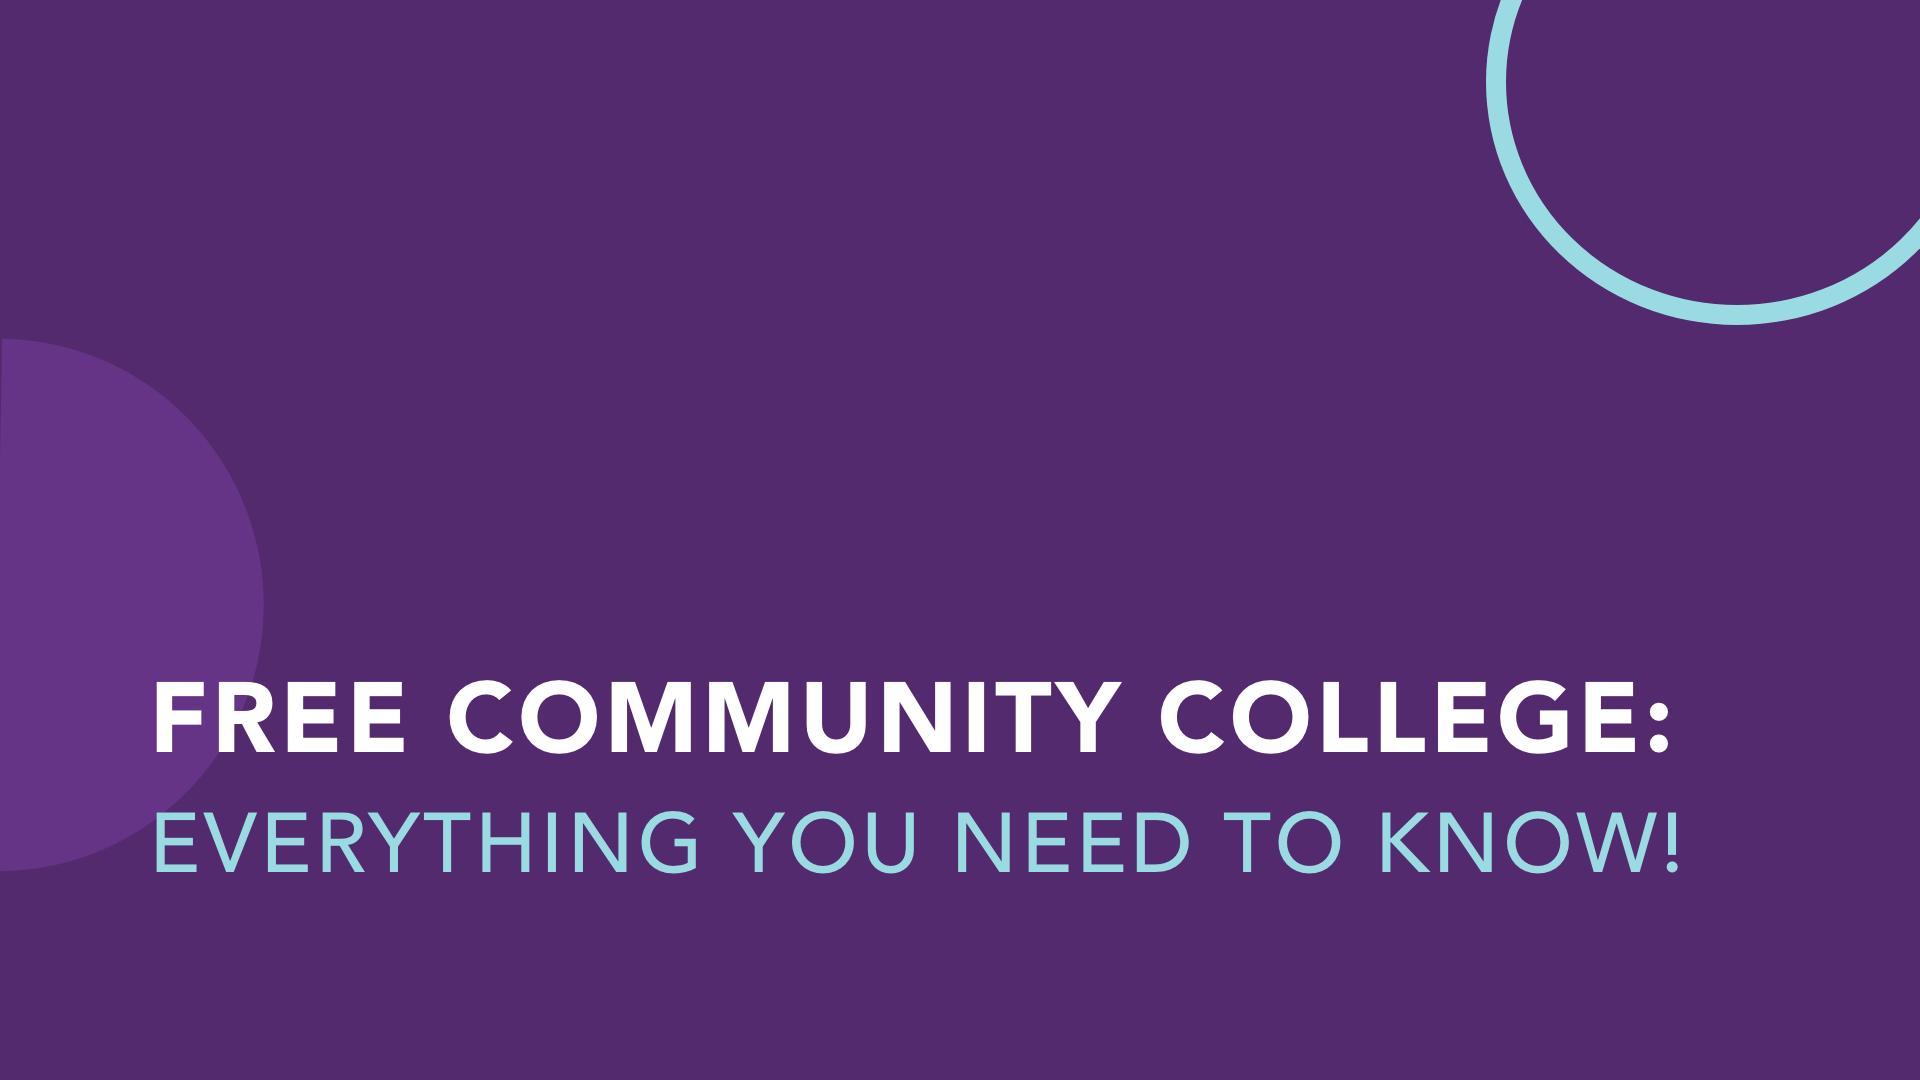 Can you take just a single class at a community college?